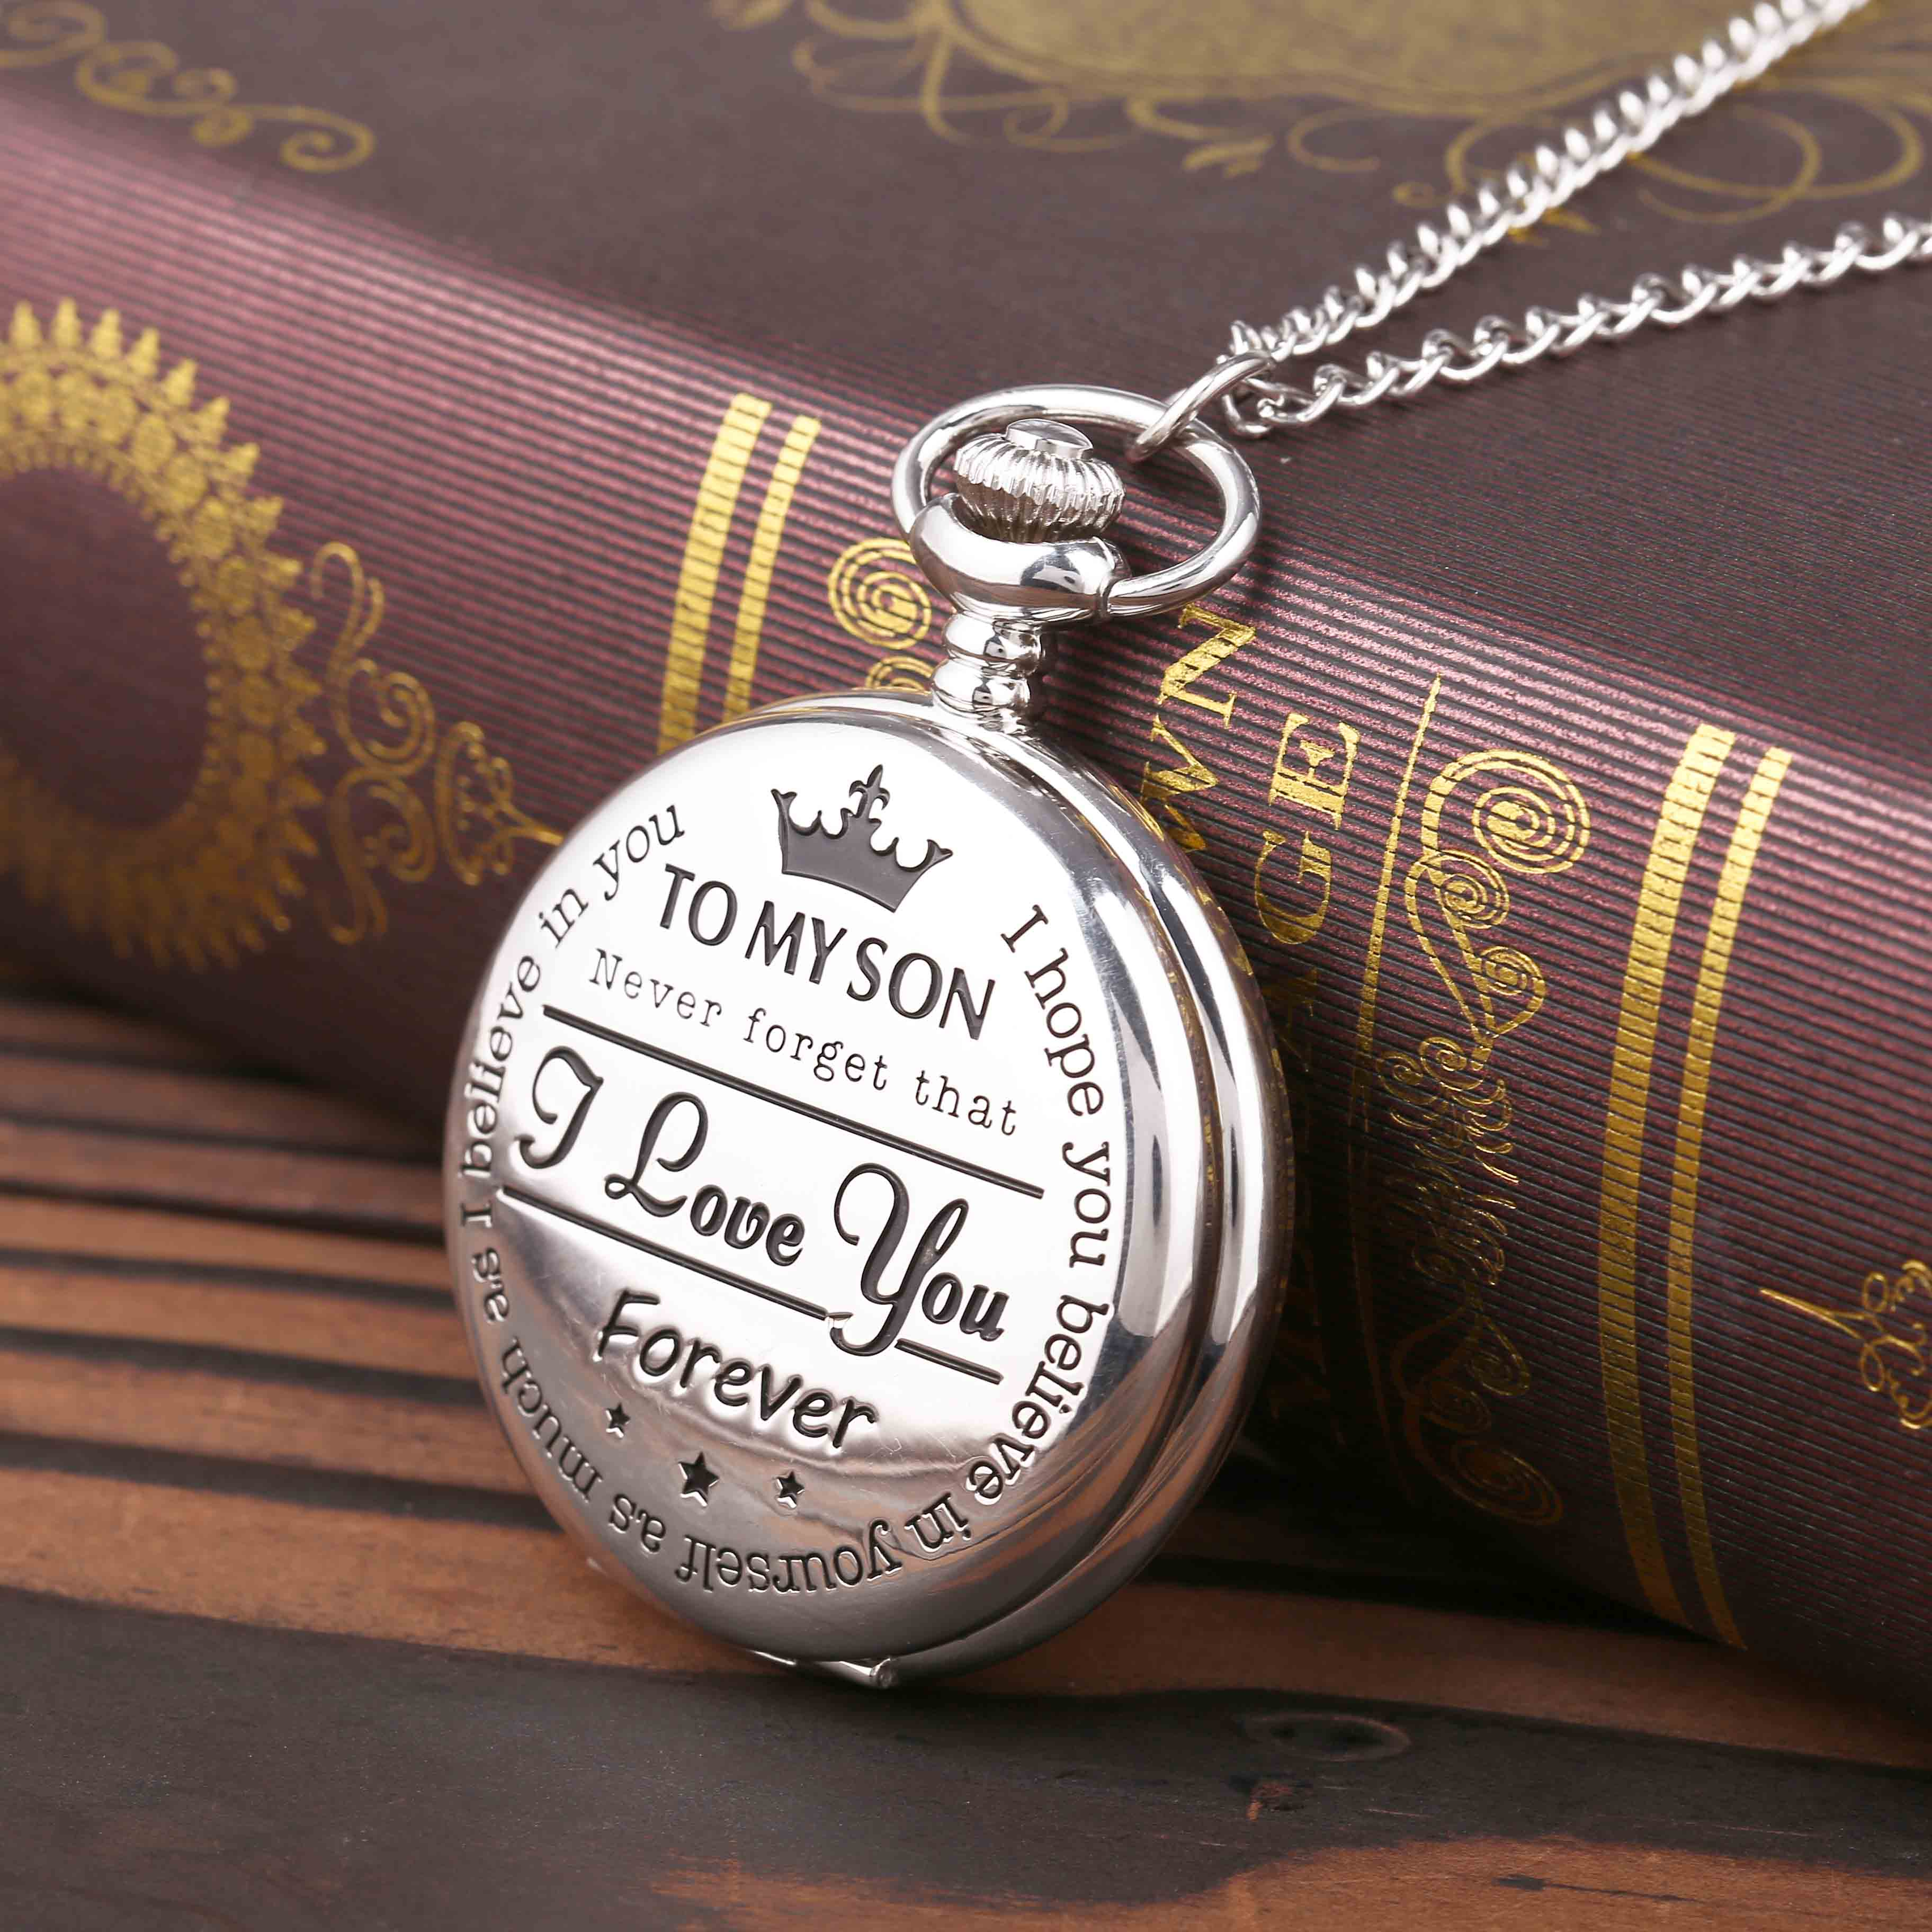 """8809""""To My Son I Love You"""" Series Pocket Watch Retro Roman Digital Pocket Watch Pendant with Chain Shi Ying Pocket Watch Gift 1"""